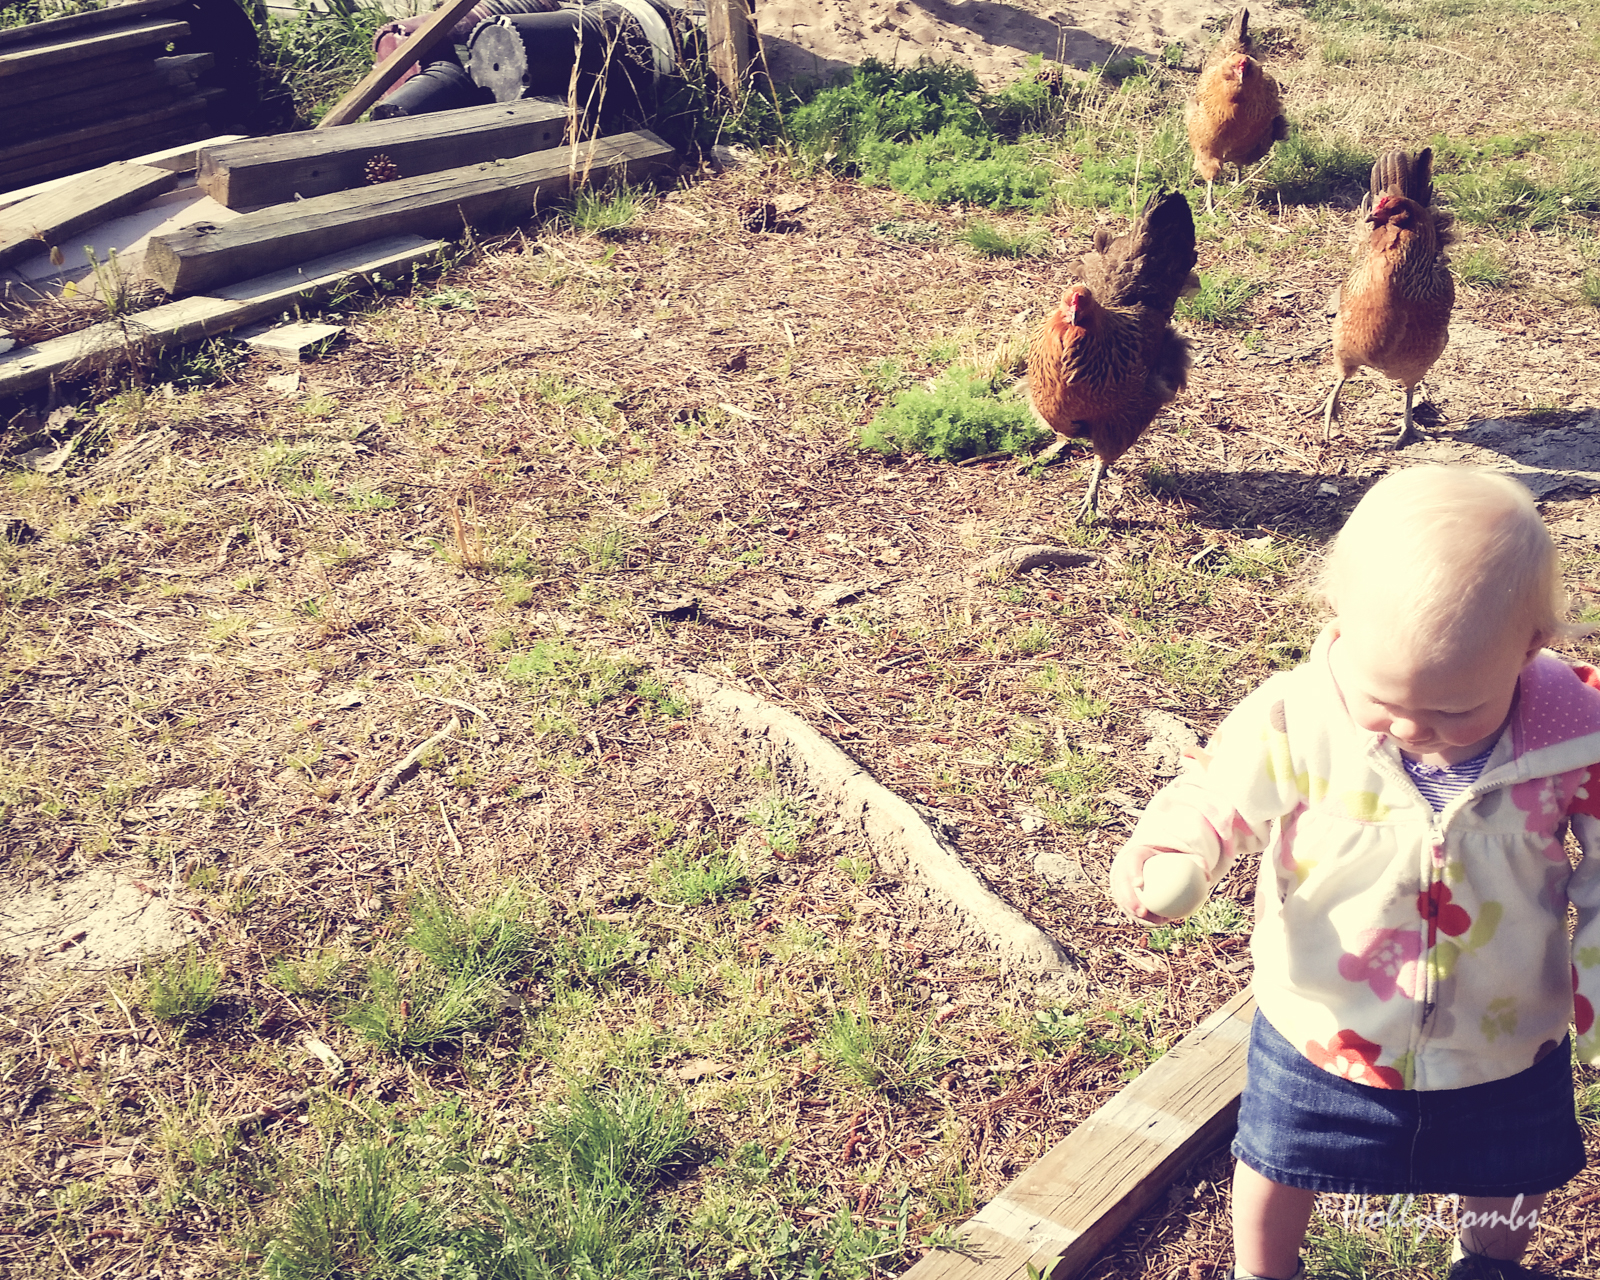 Fiona does chores, feeds chickens and collects eggs